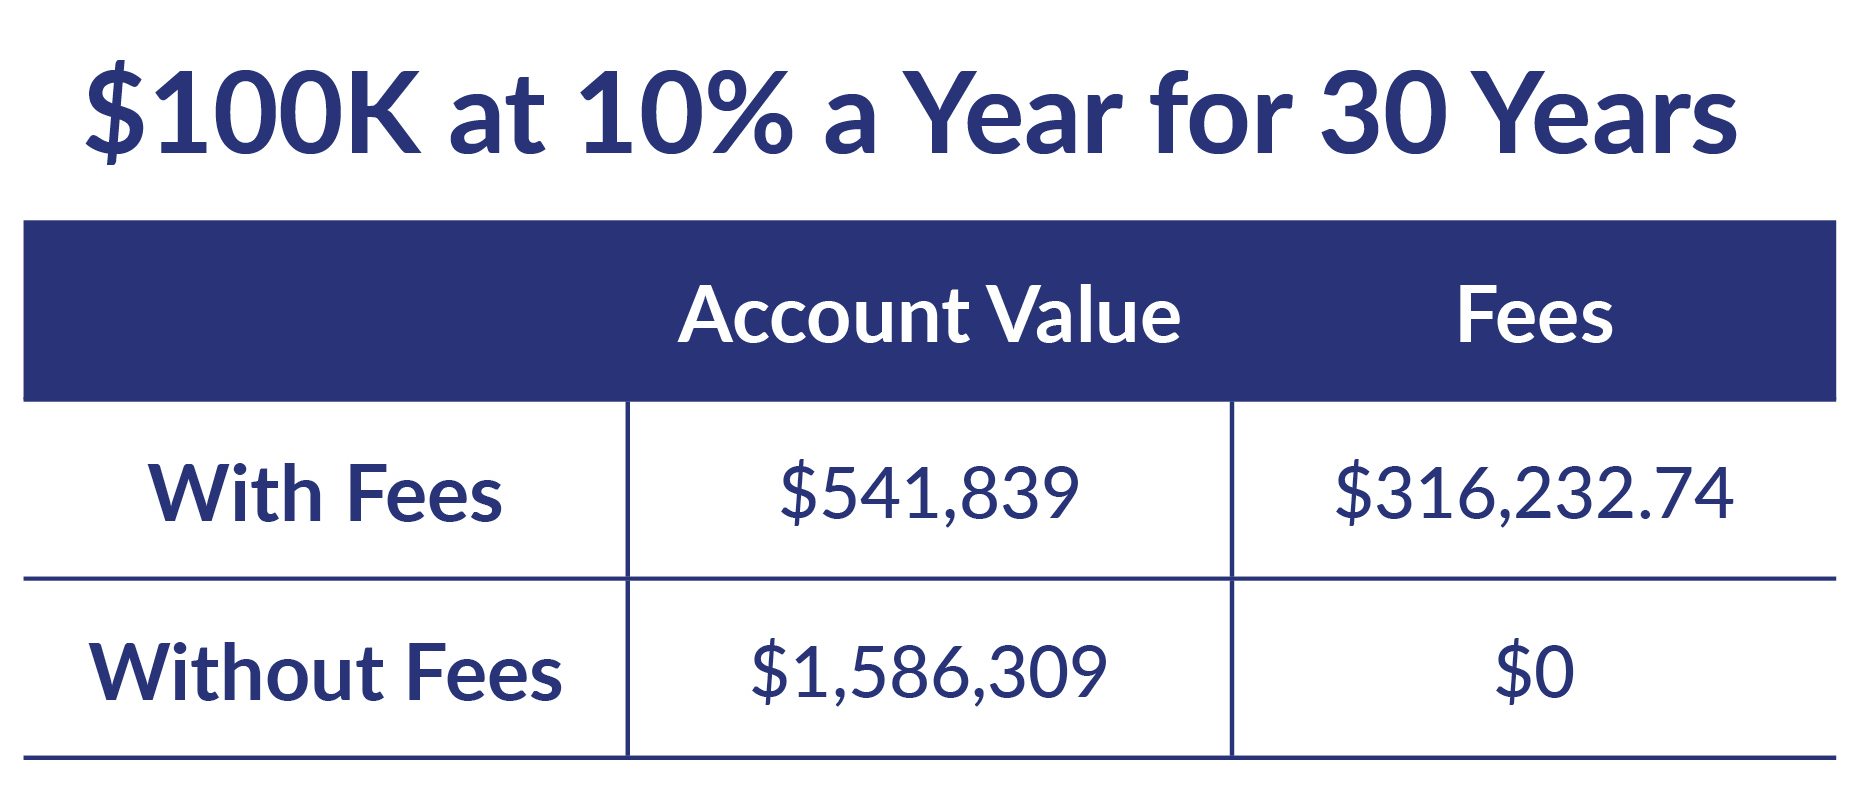 Table showing that you could make over a million dollars over 30 years without fees, but with fees, you're making just around $500,000.